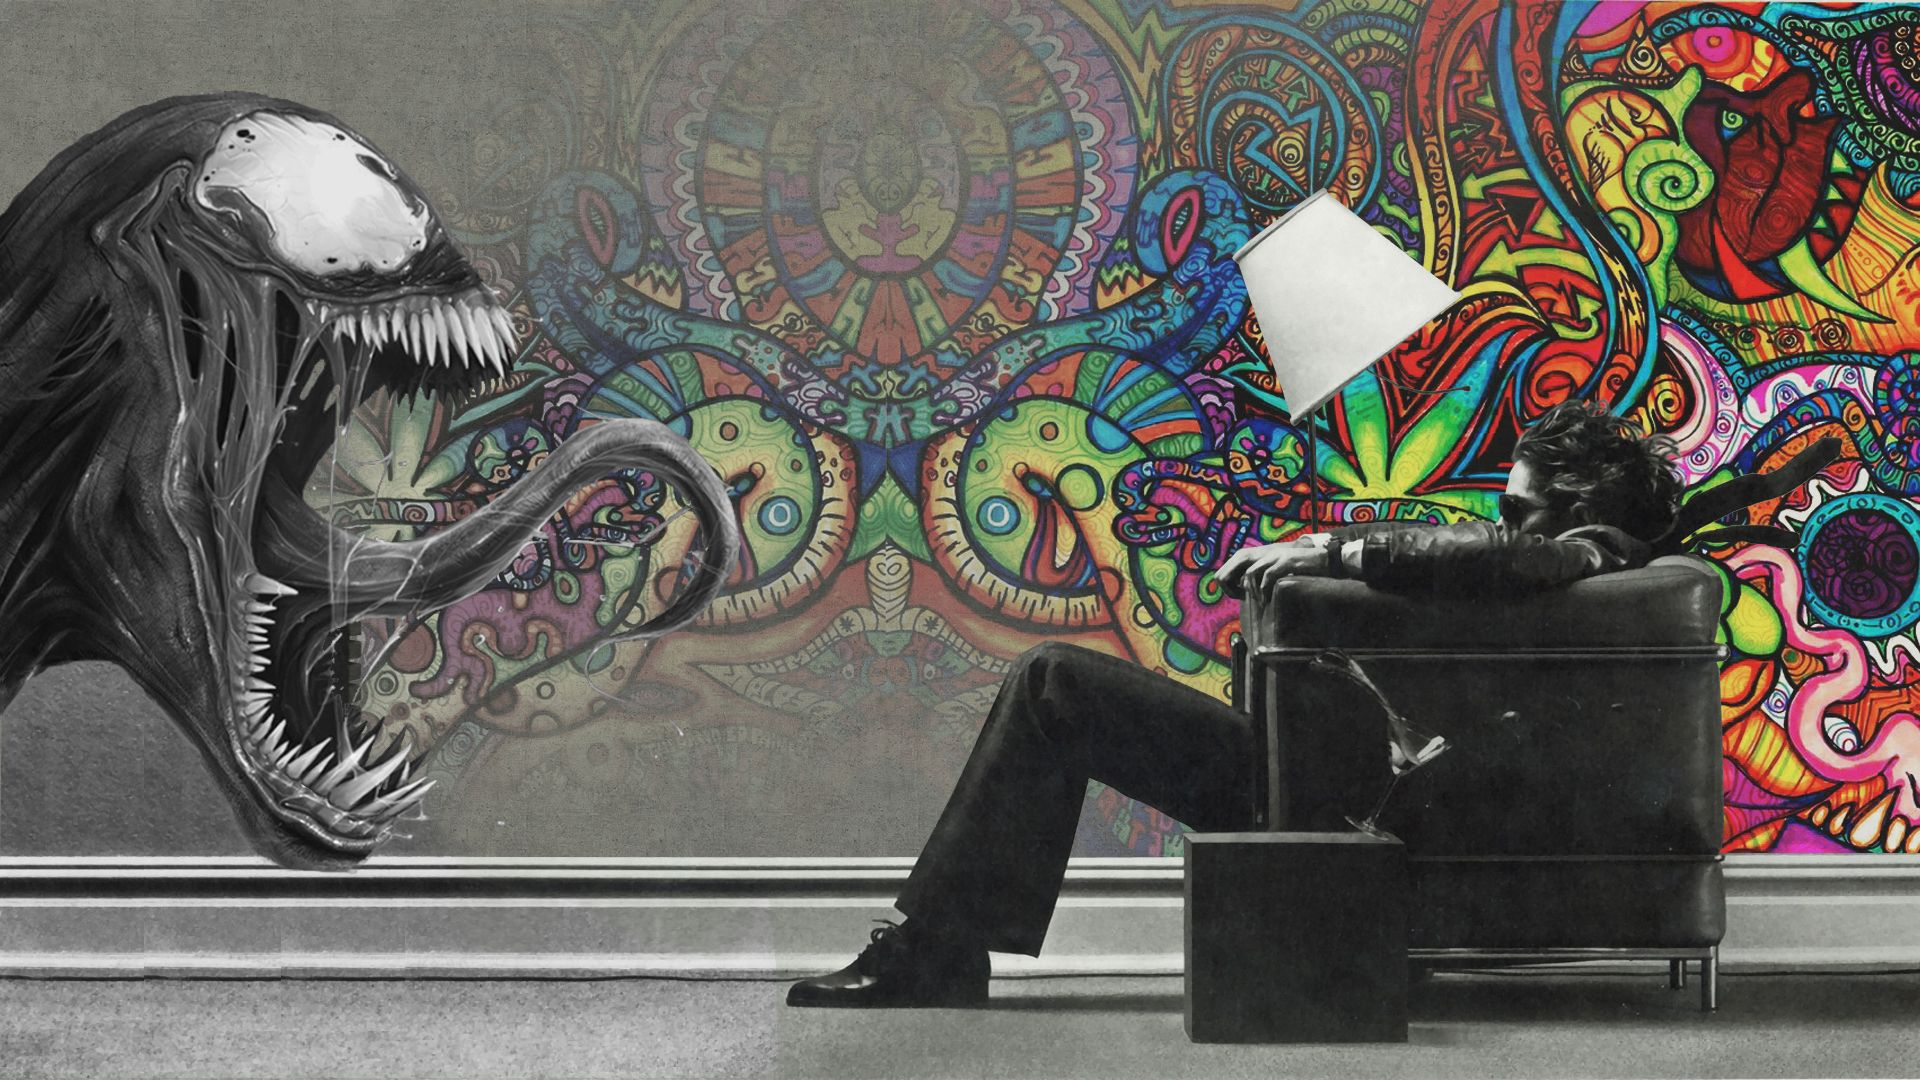 abstract awesome wallpaper graffiti images 126 backgrounds